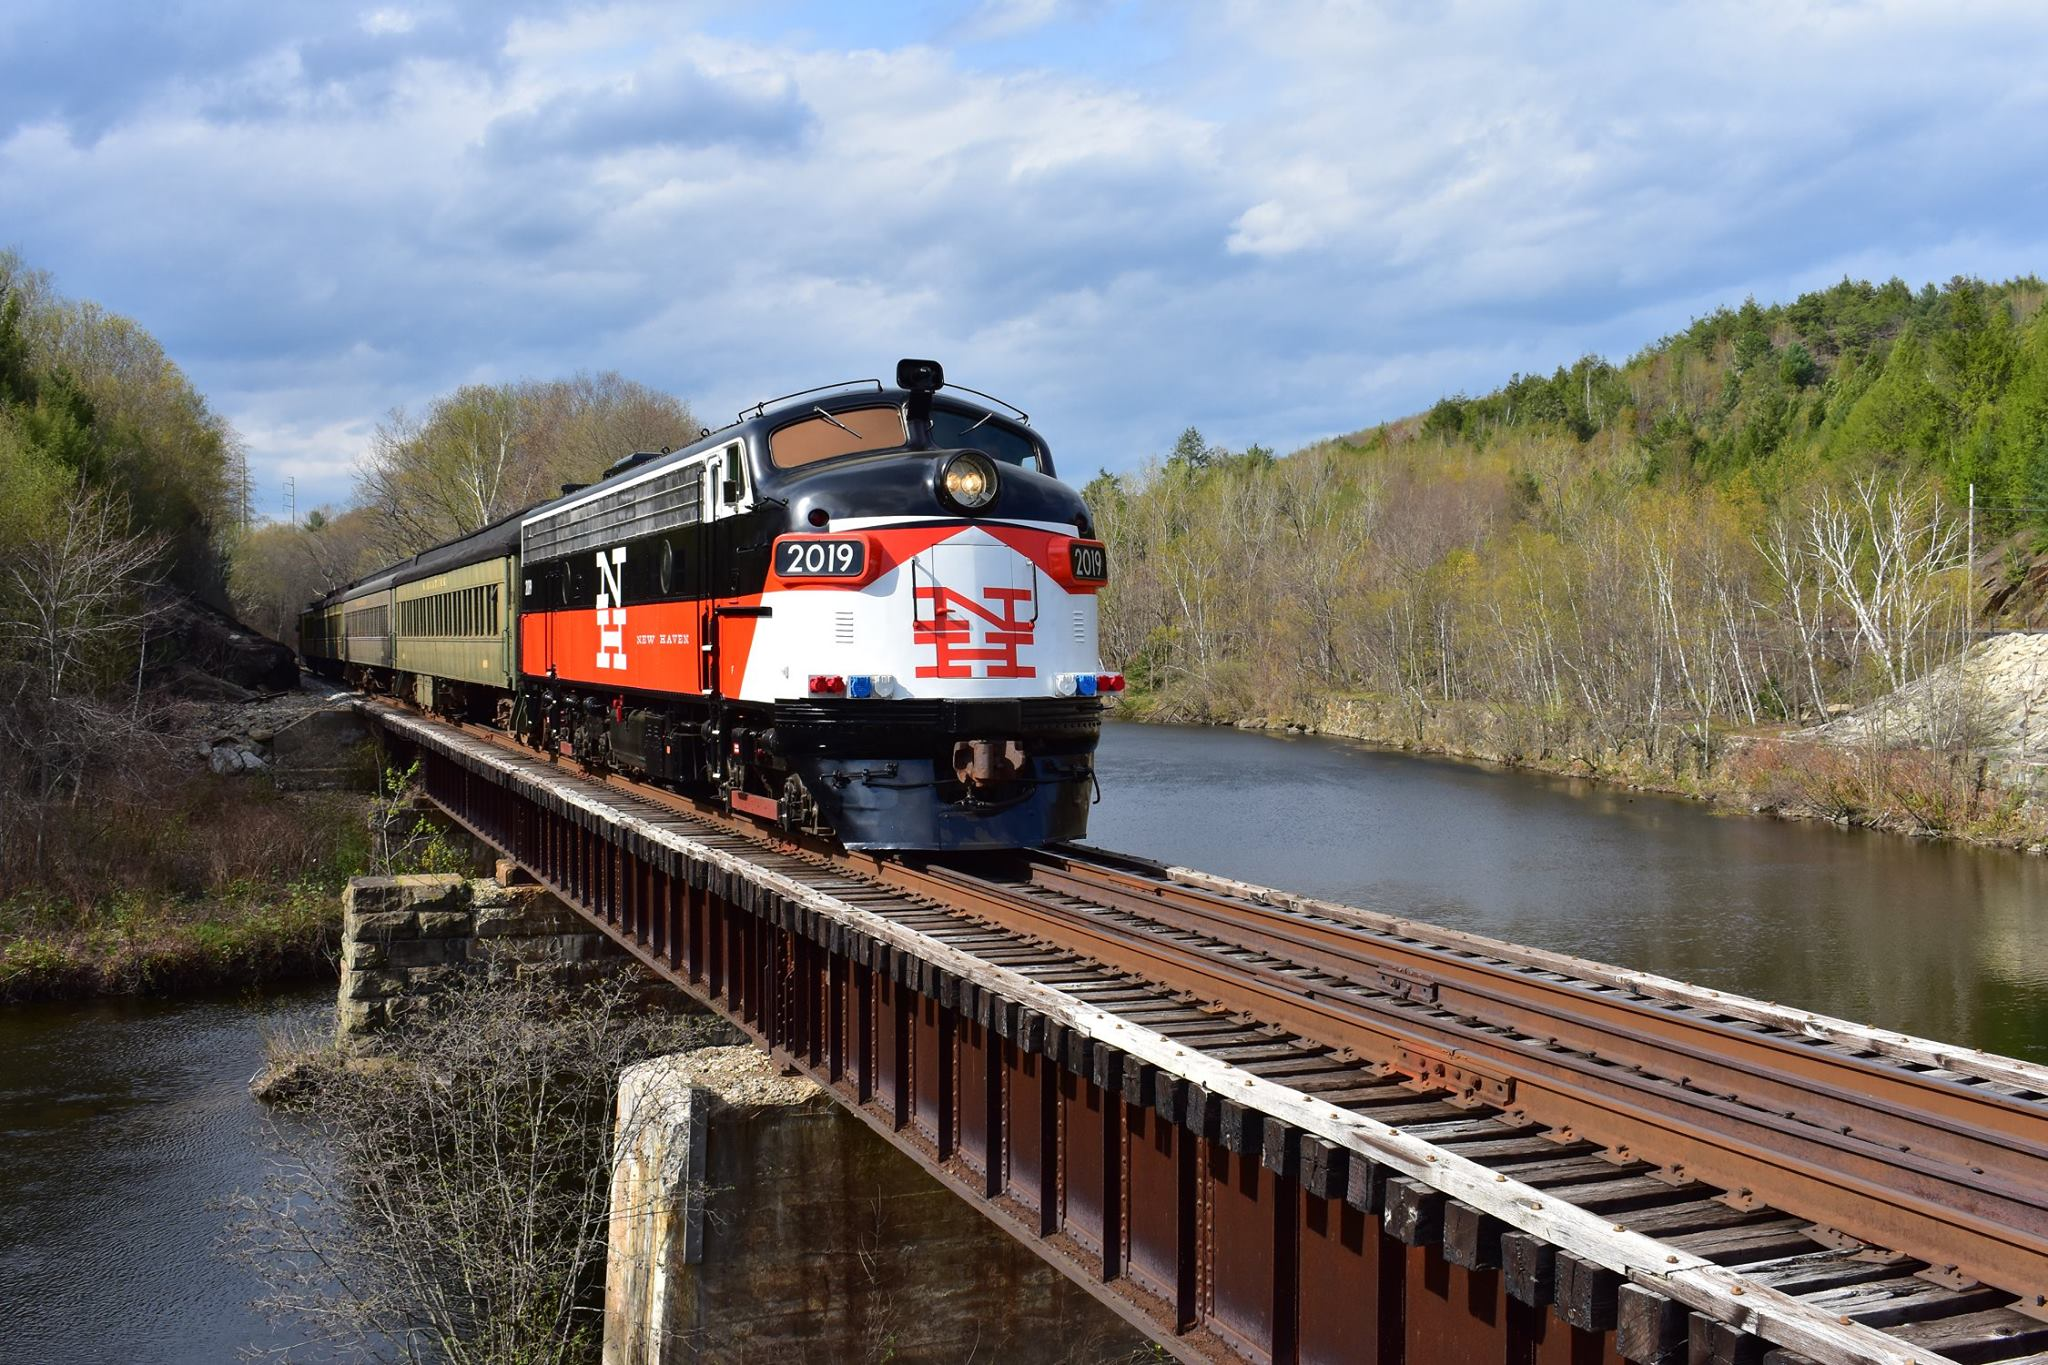 Ride Antique Trains At These 5 Rail Museums In Connecticut